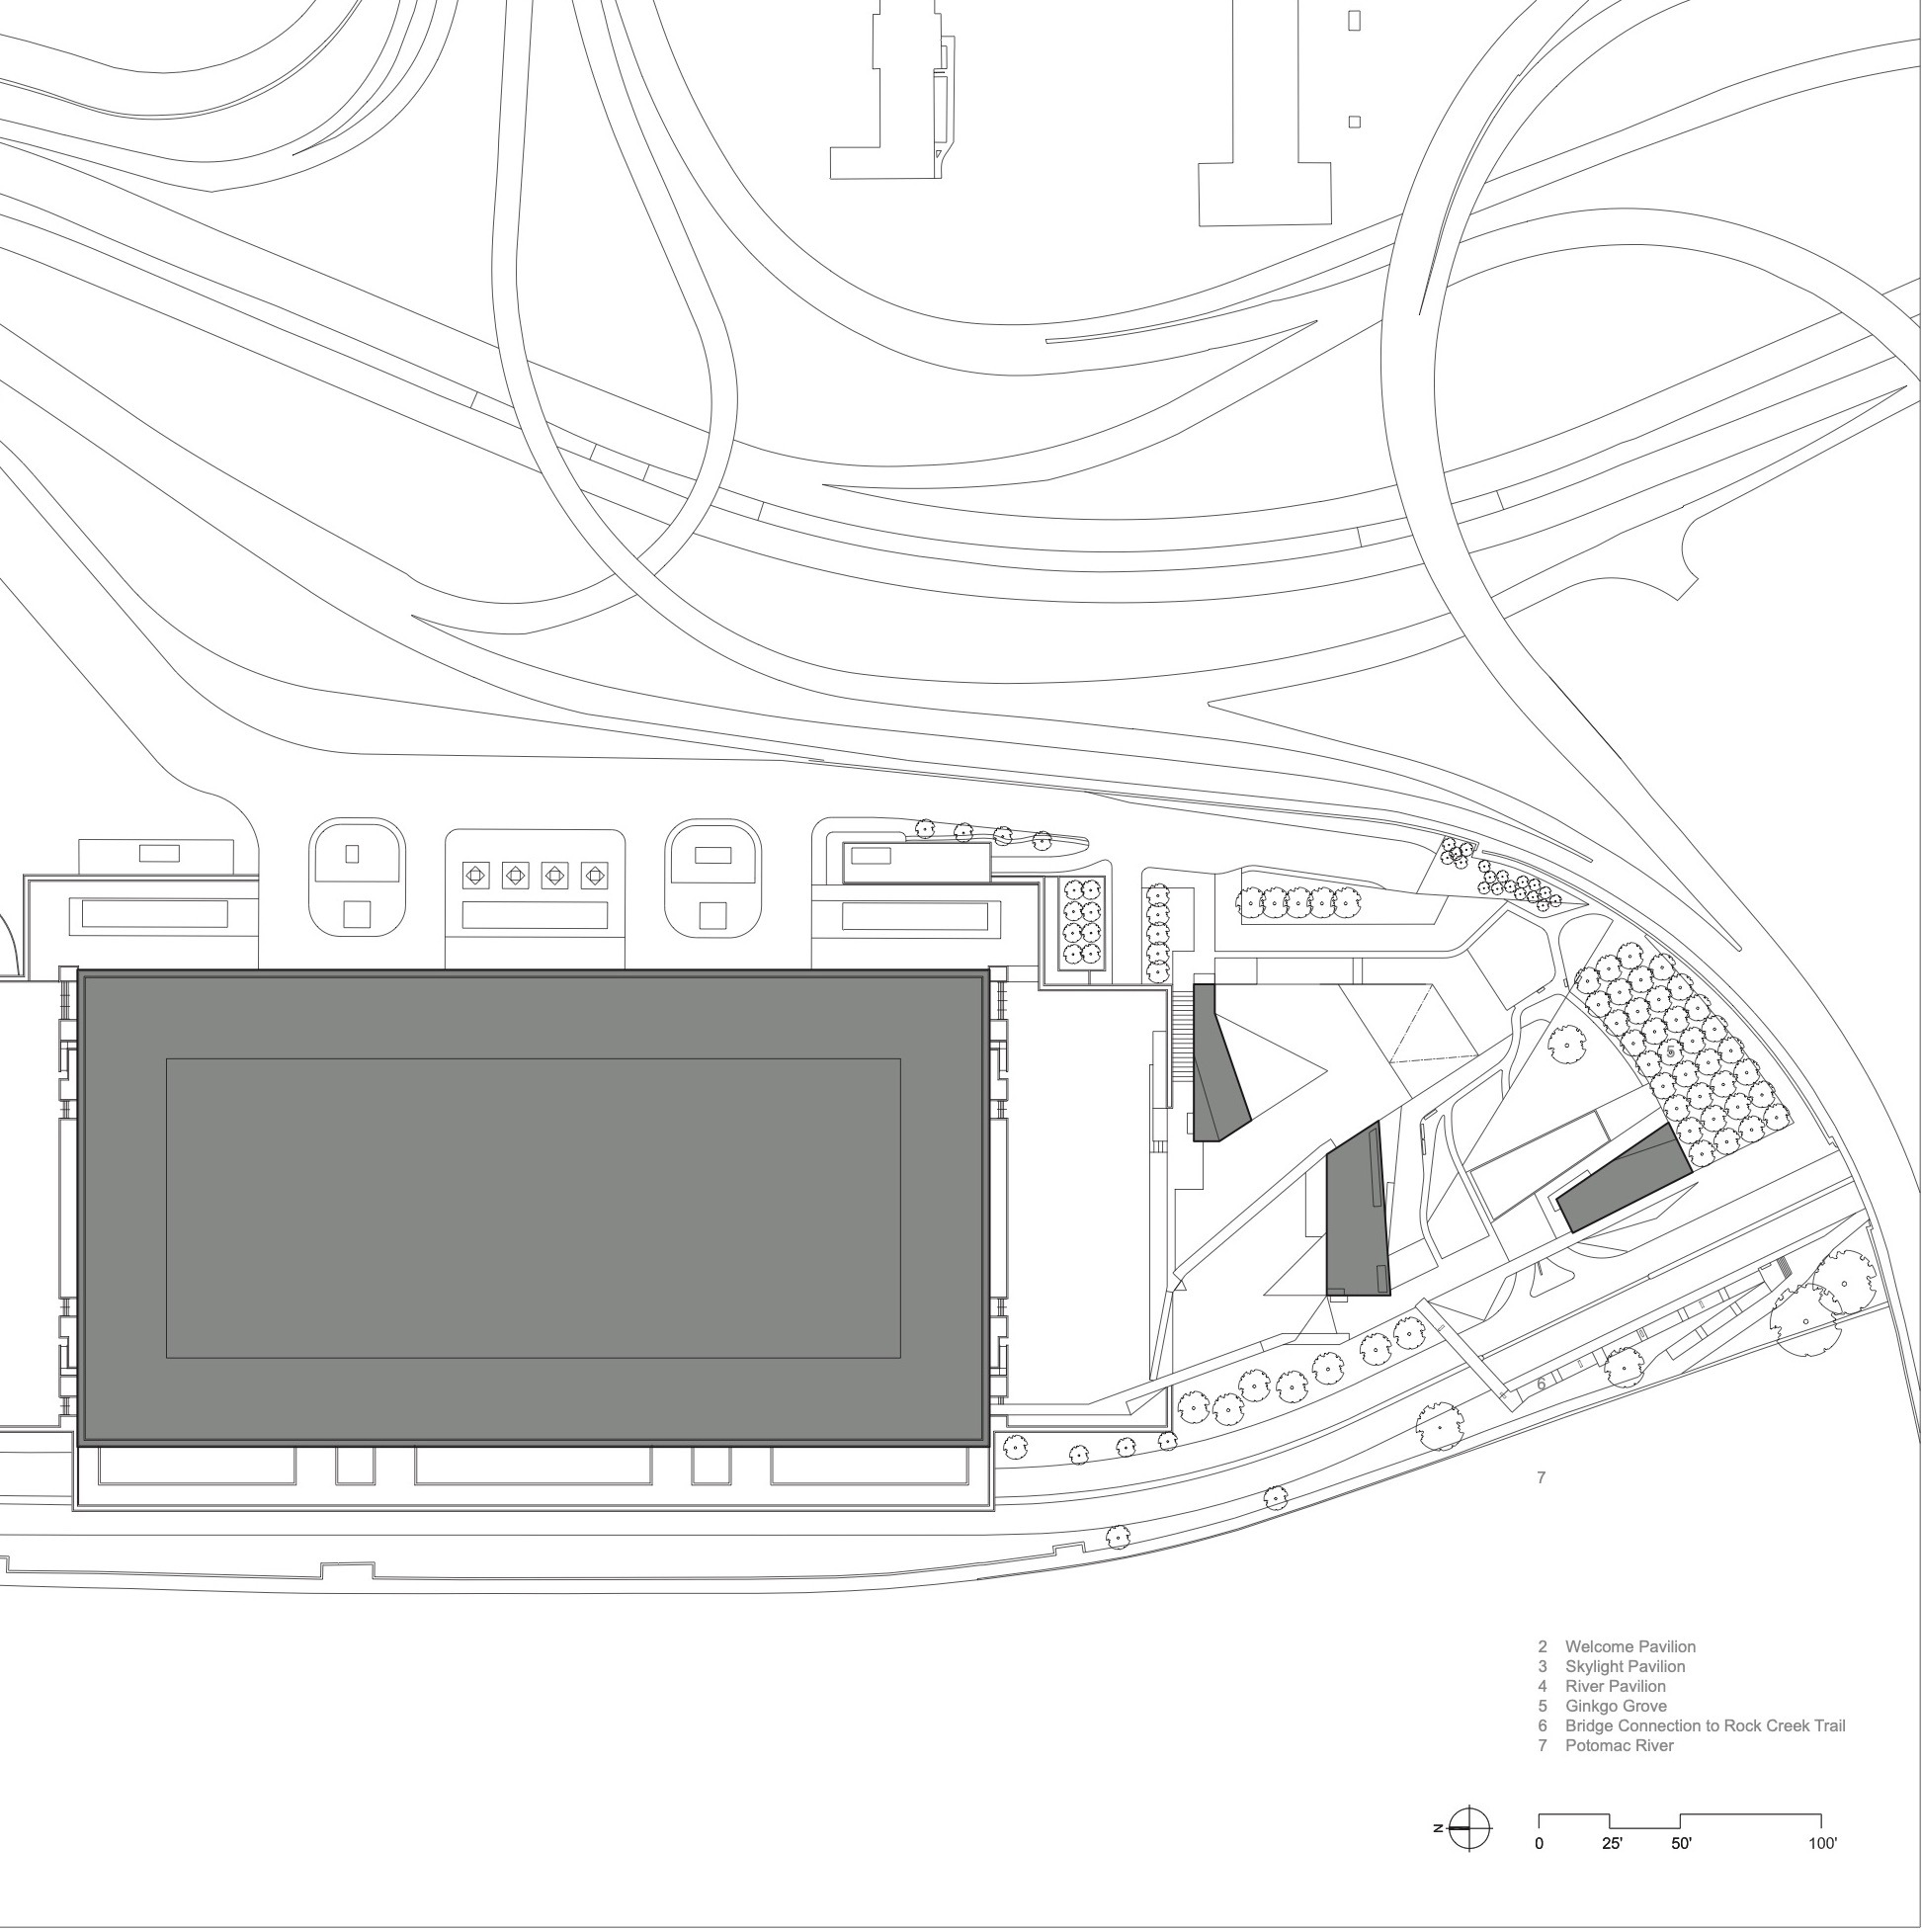 18_20190903_Plans_Site-plan_1-150AI.jpg